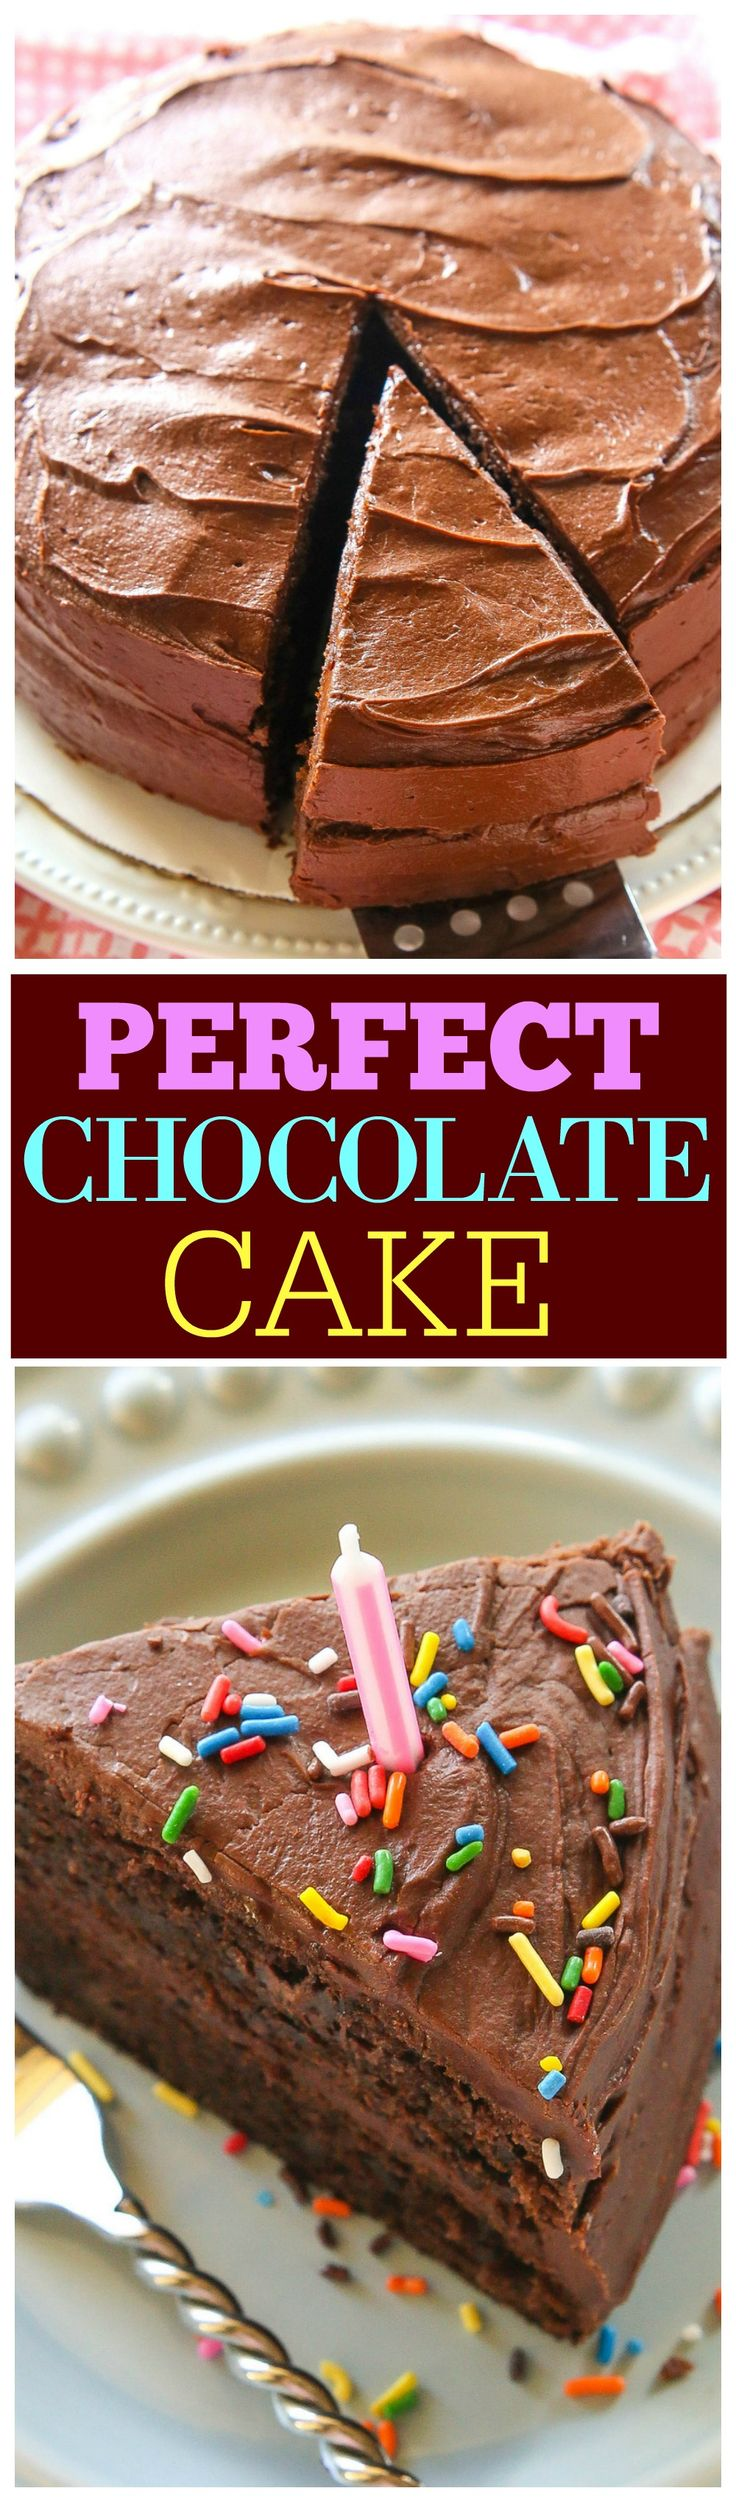 Perfect Chocolate Cake - moist with the silkiest frosting ever! the-girl-who-ate-everything.com